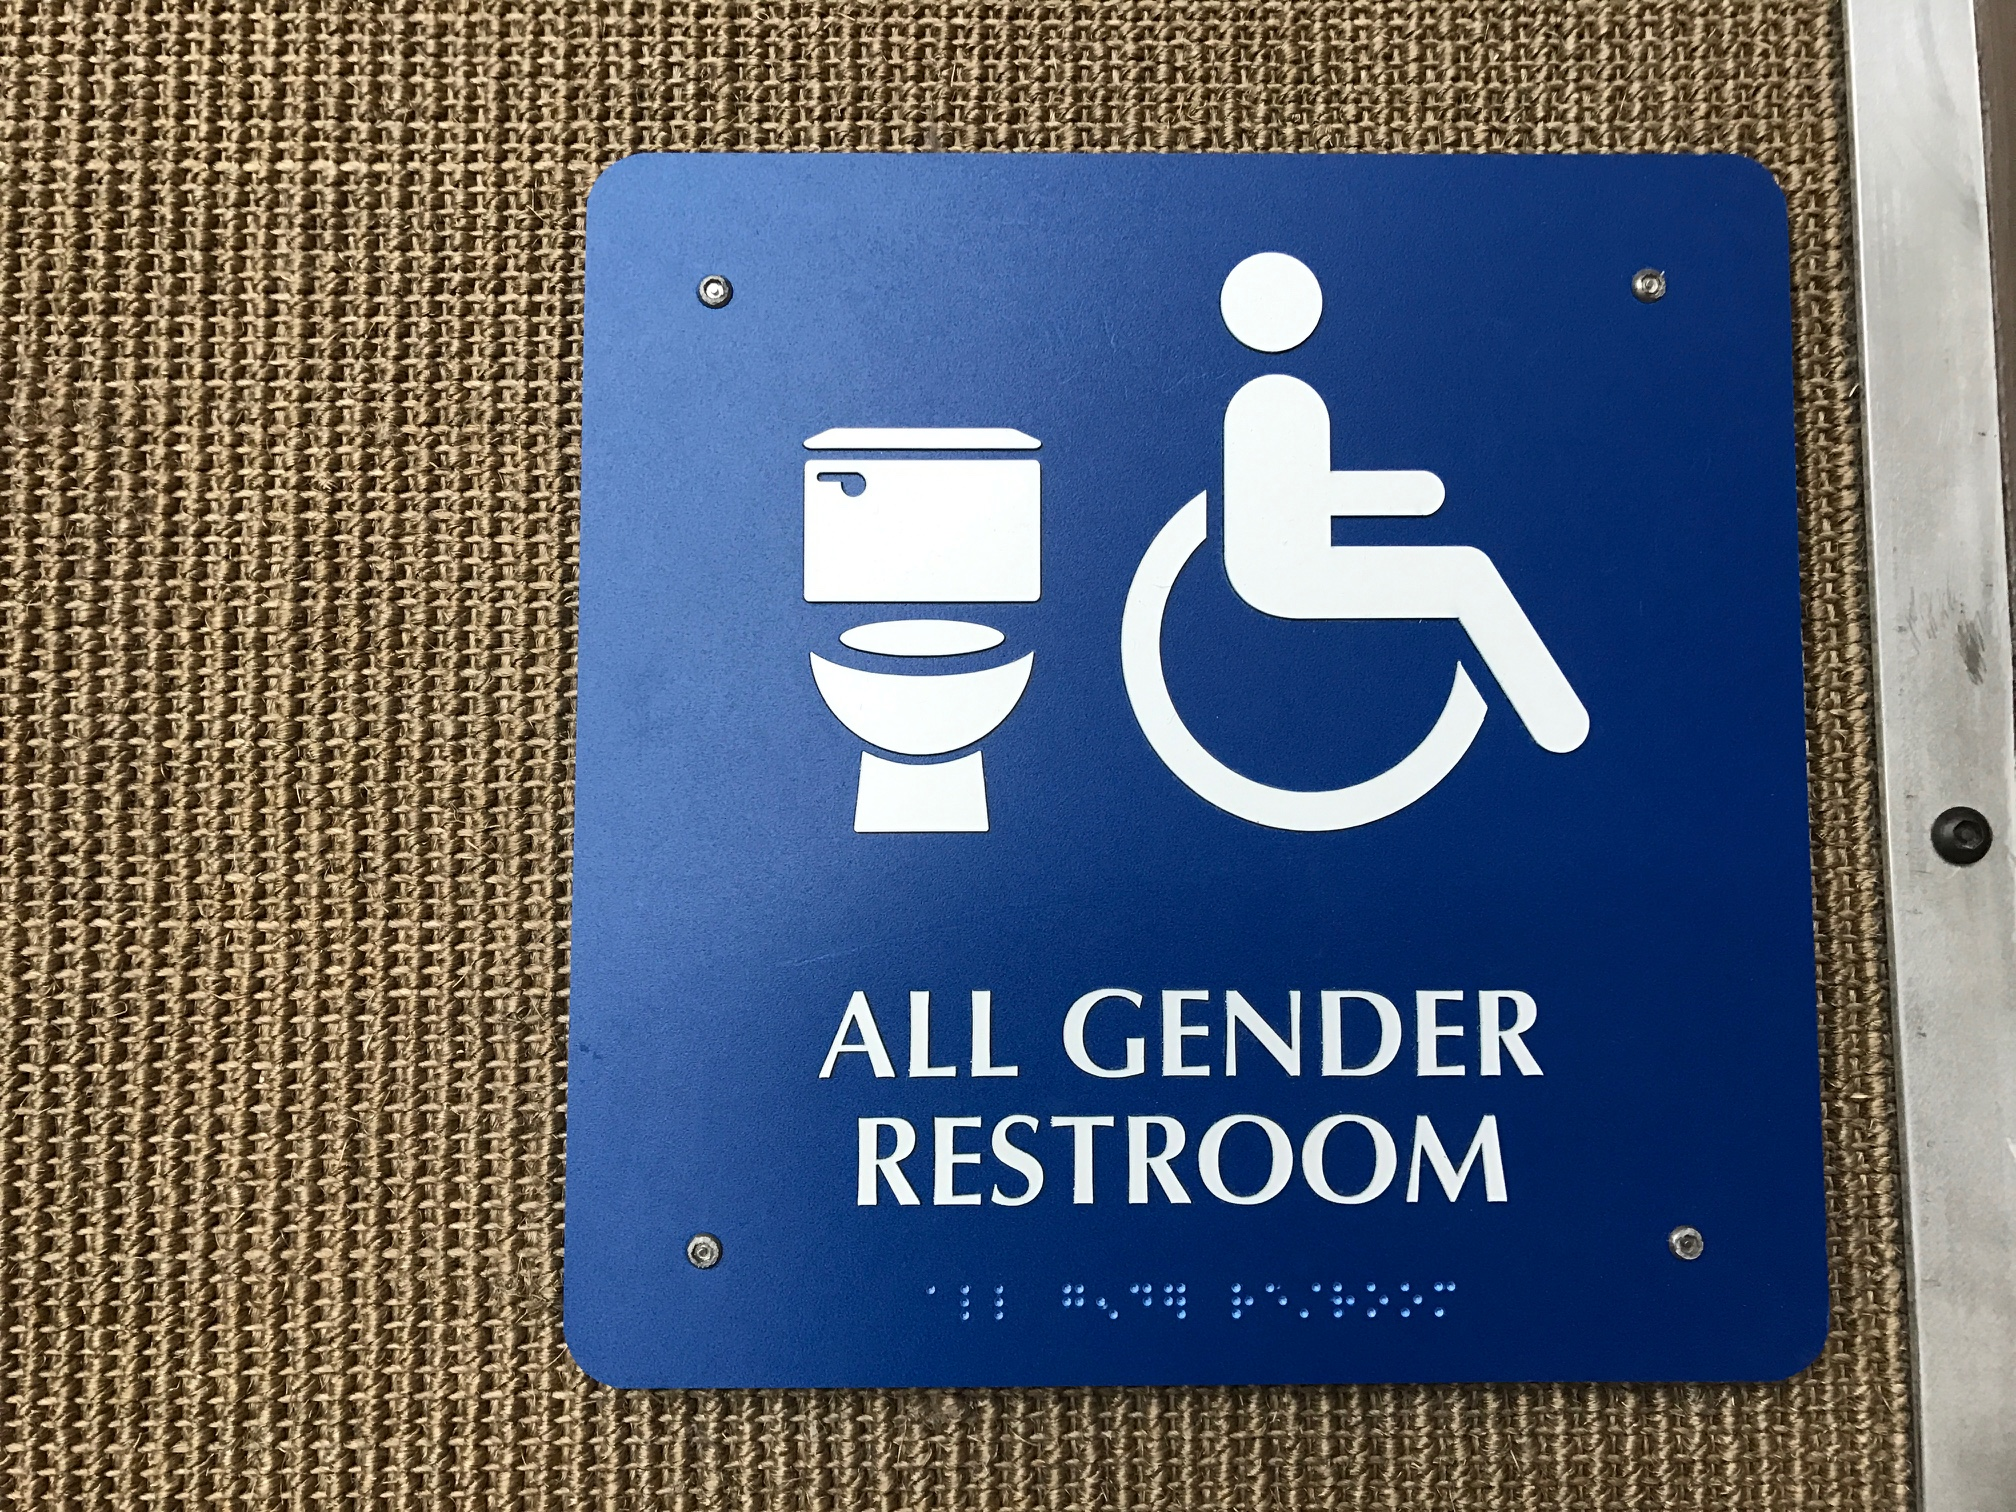 Is There Evidence Supporting Texas Bathroom Bill As A Public